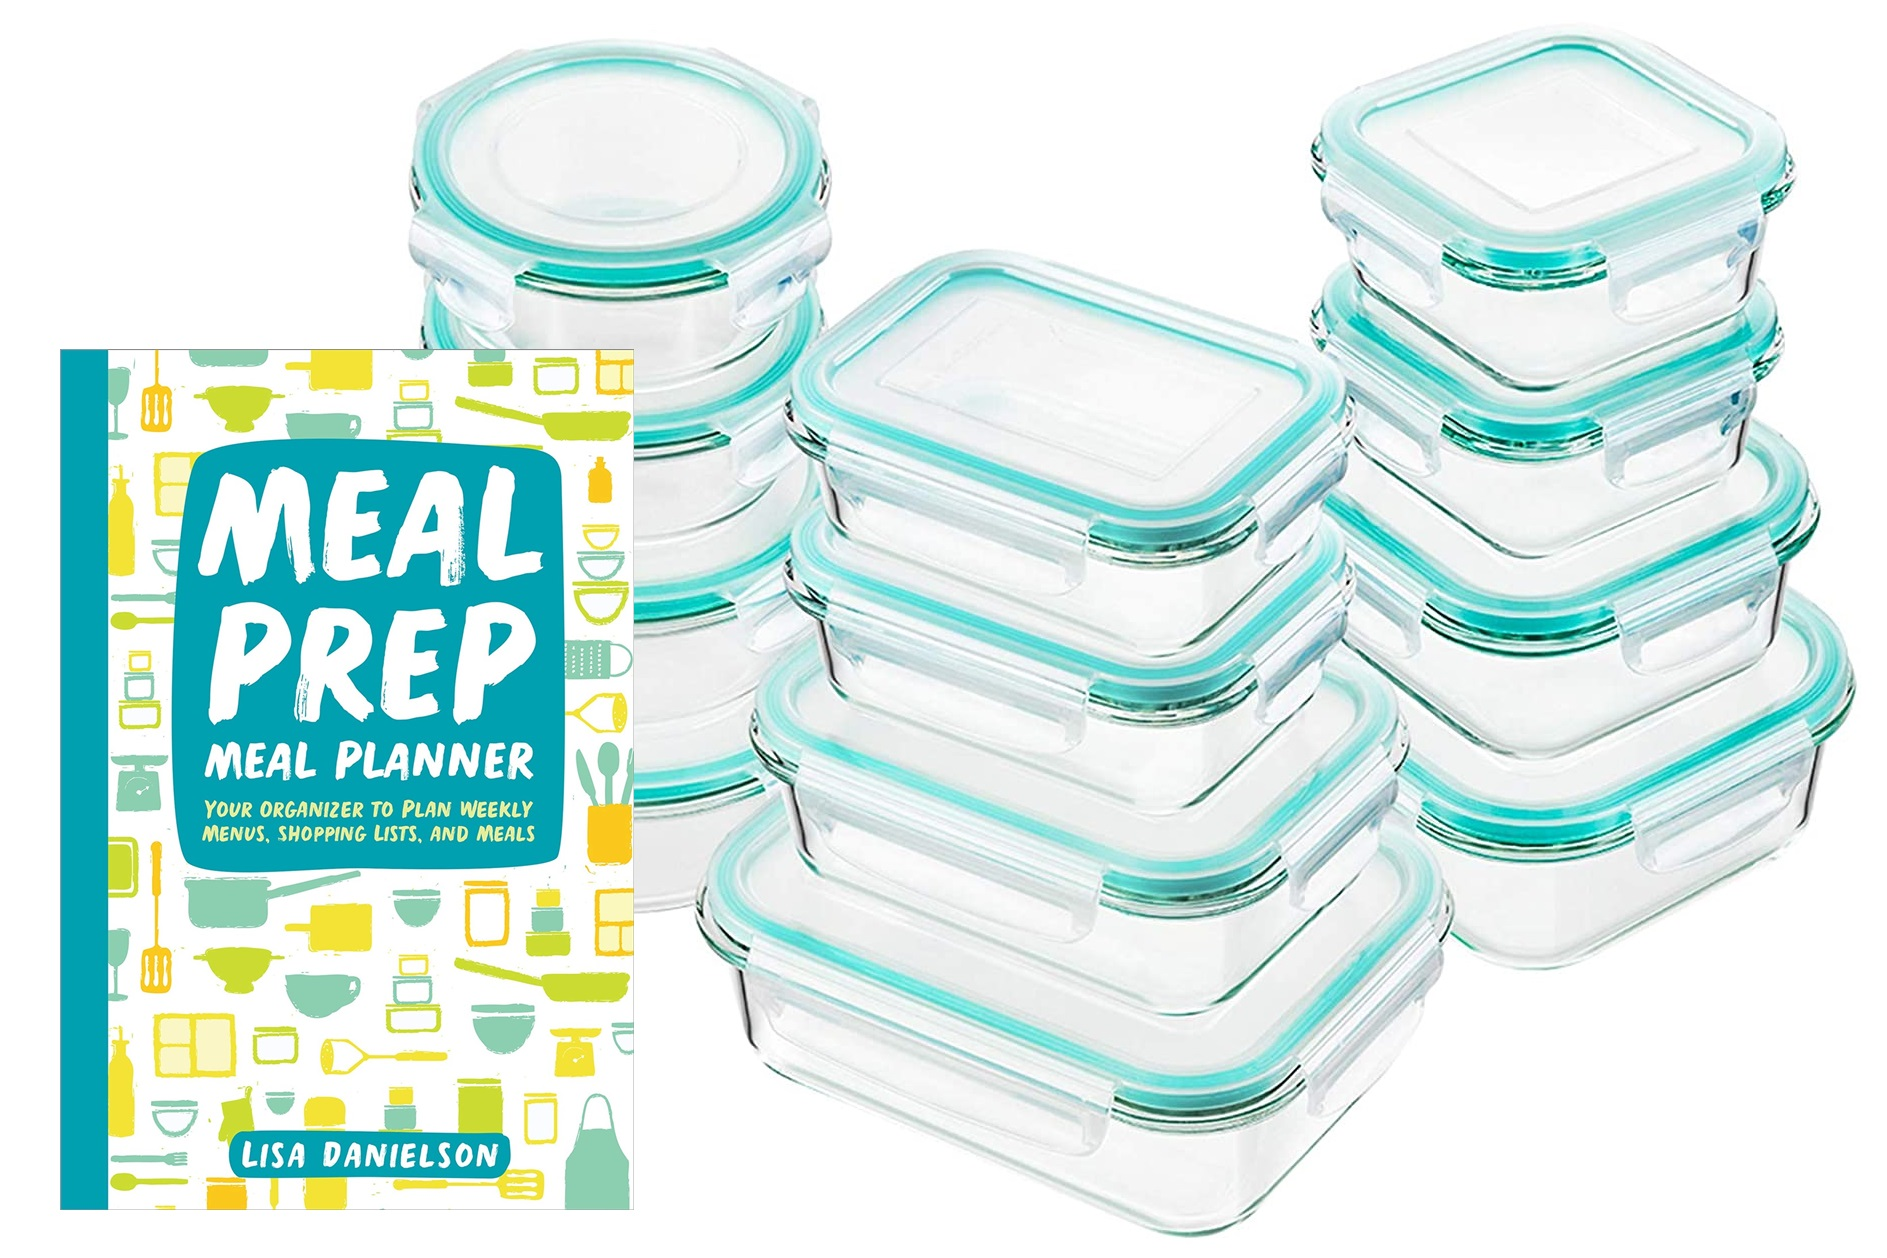 The Dairy-Free Gift Guide with Unique Ideas for Adults and Kids. Pictured: Meal Prep Planner and Teal Containers